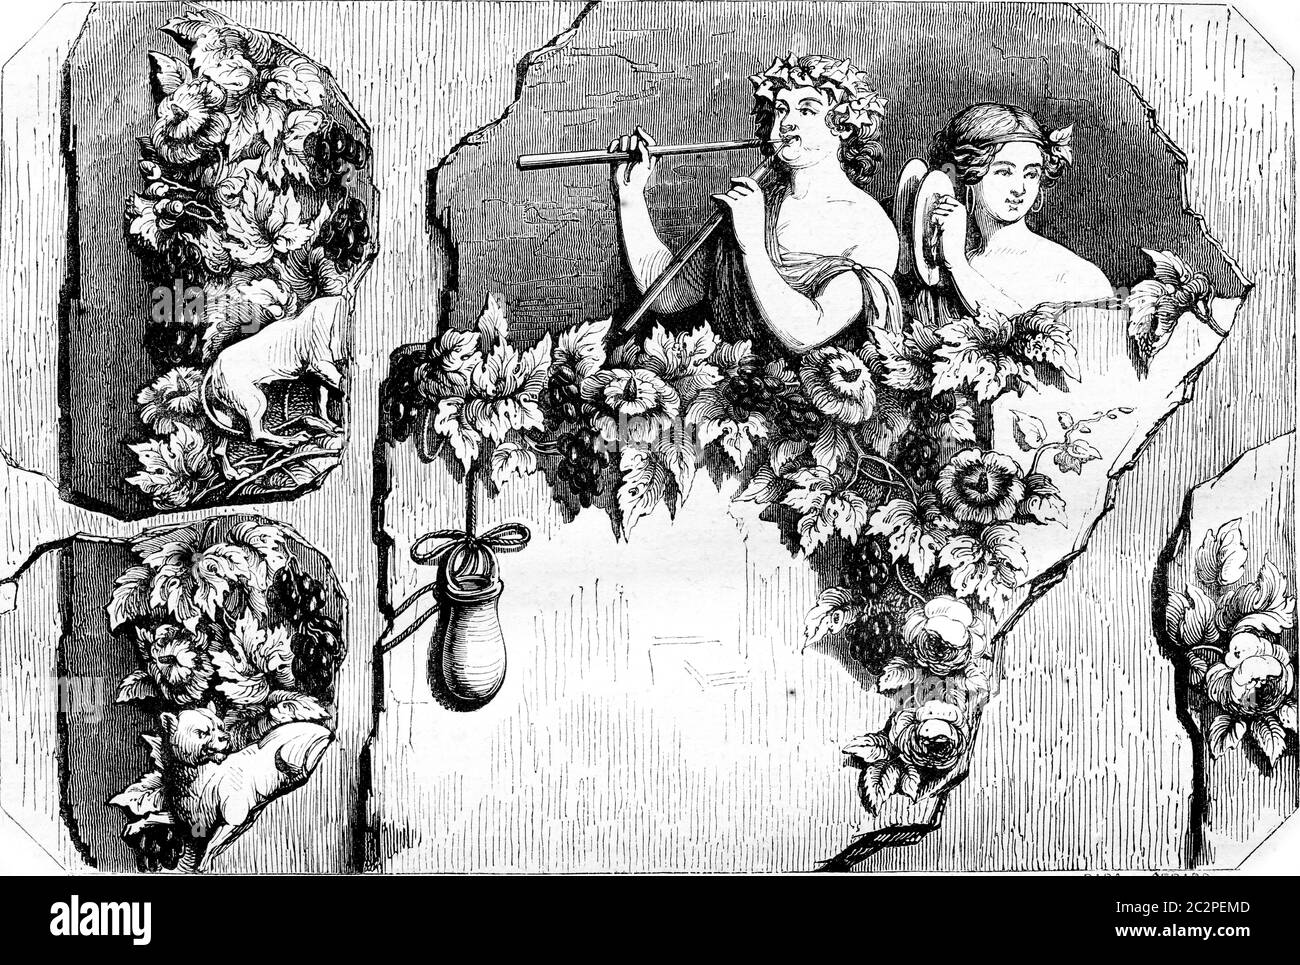 Bacchant and Bacchante, Fragment of an ancient painting, vintage engraved illustration. Magasin Pittoresque 1844. Stock Photo